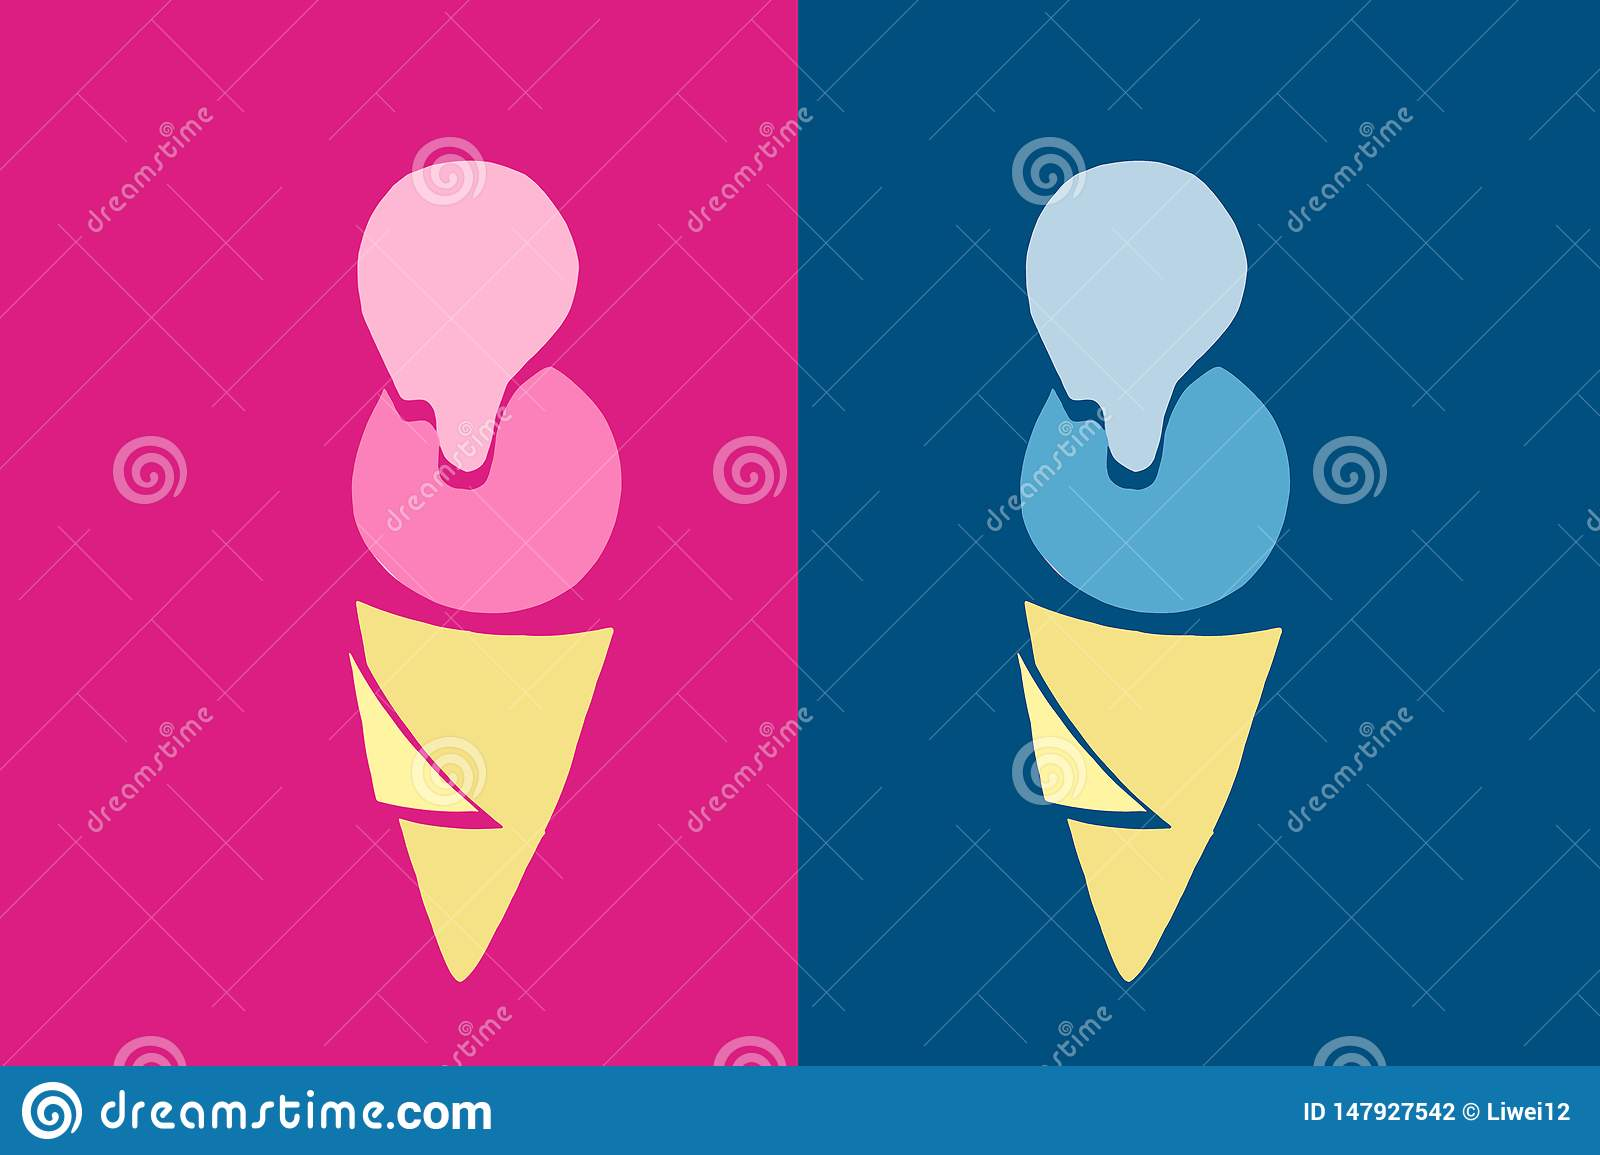 two icecreams illustration